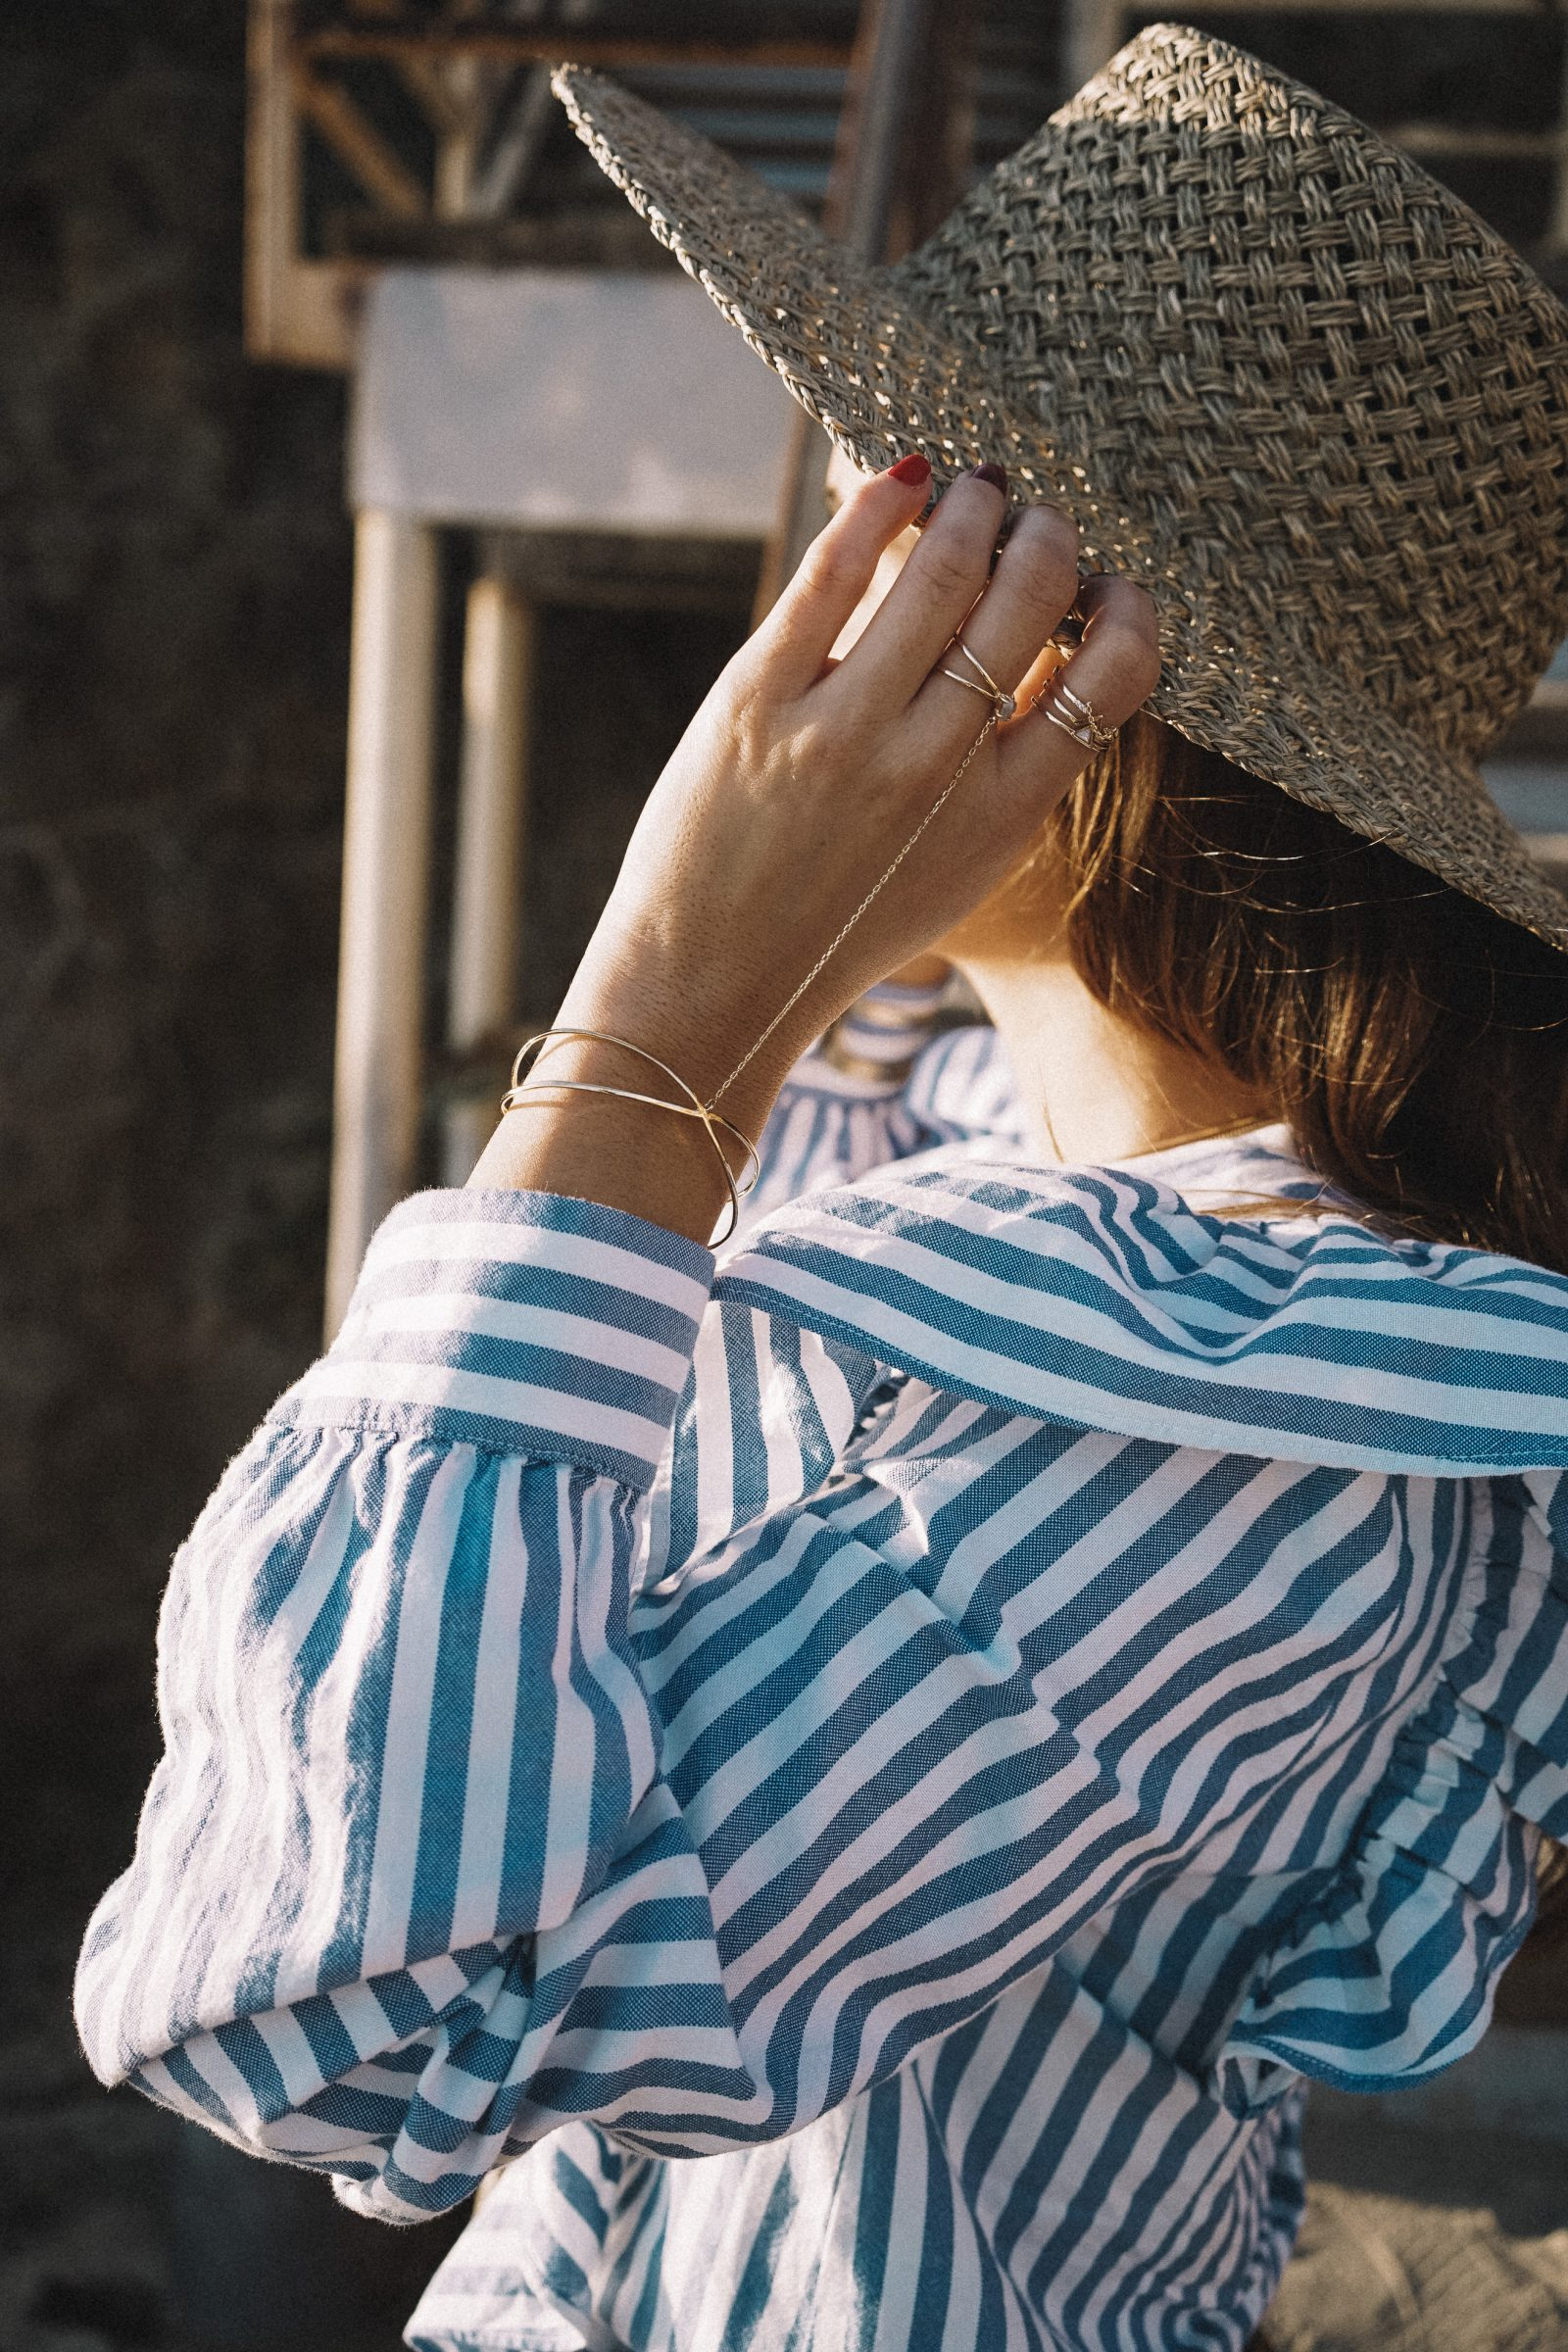 stripped_blouse-camel_trousers-lack_of_color_hat-wanderlust_jewels-matador_beach-malibu-golden_goose_sneakers-street_style-collage_vintage-87